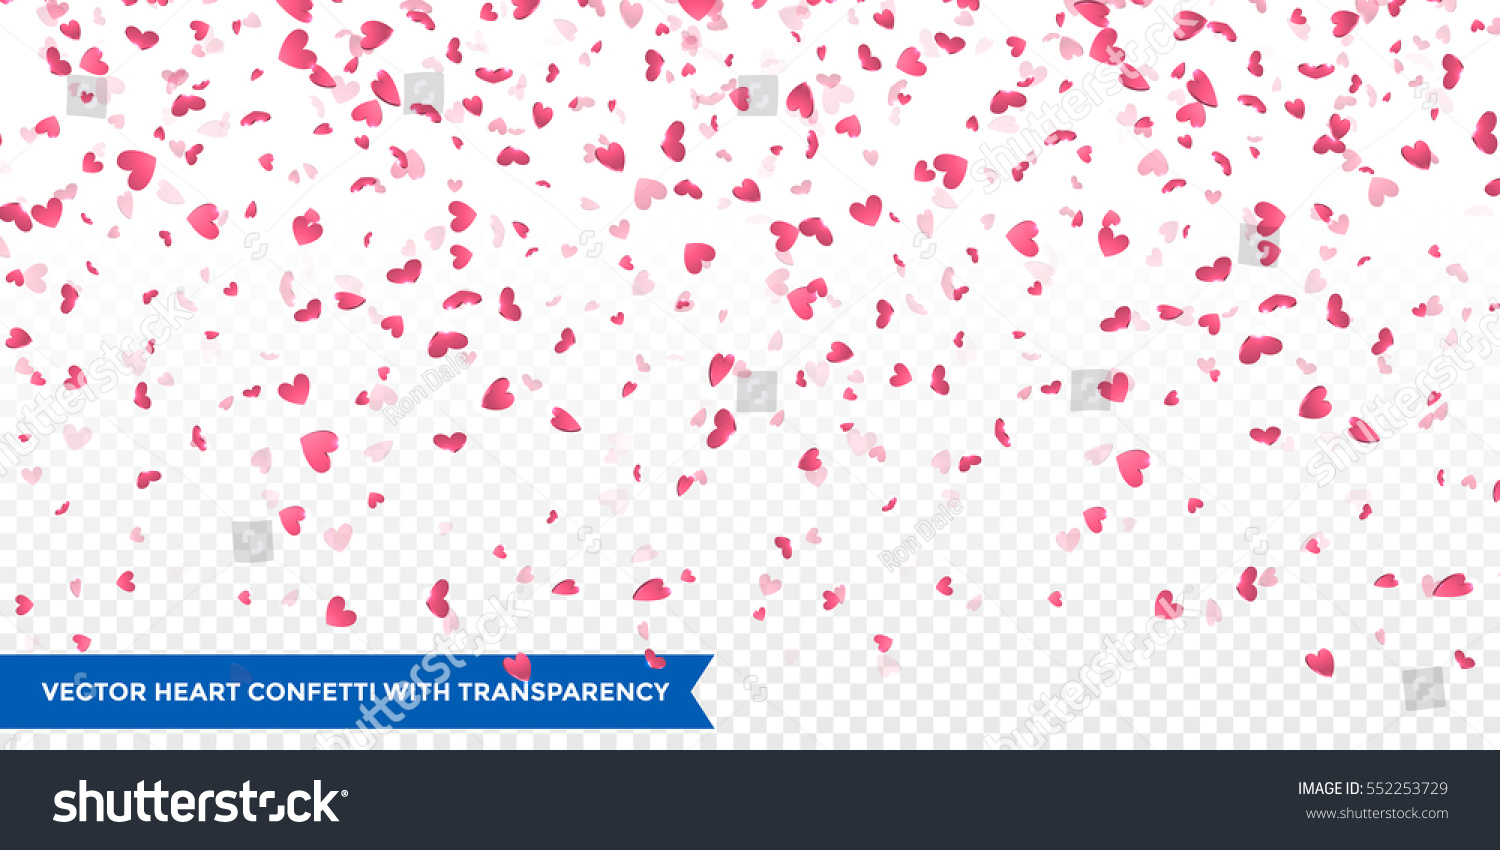 Heart confetti of Valentines petals falling on transparent background. Flower petal in shape of heart confetti for Women's Day #552253729